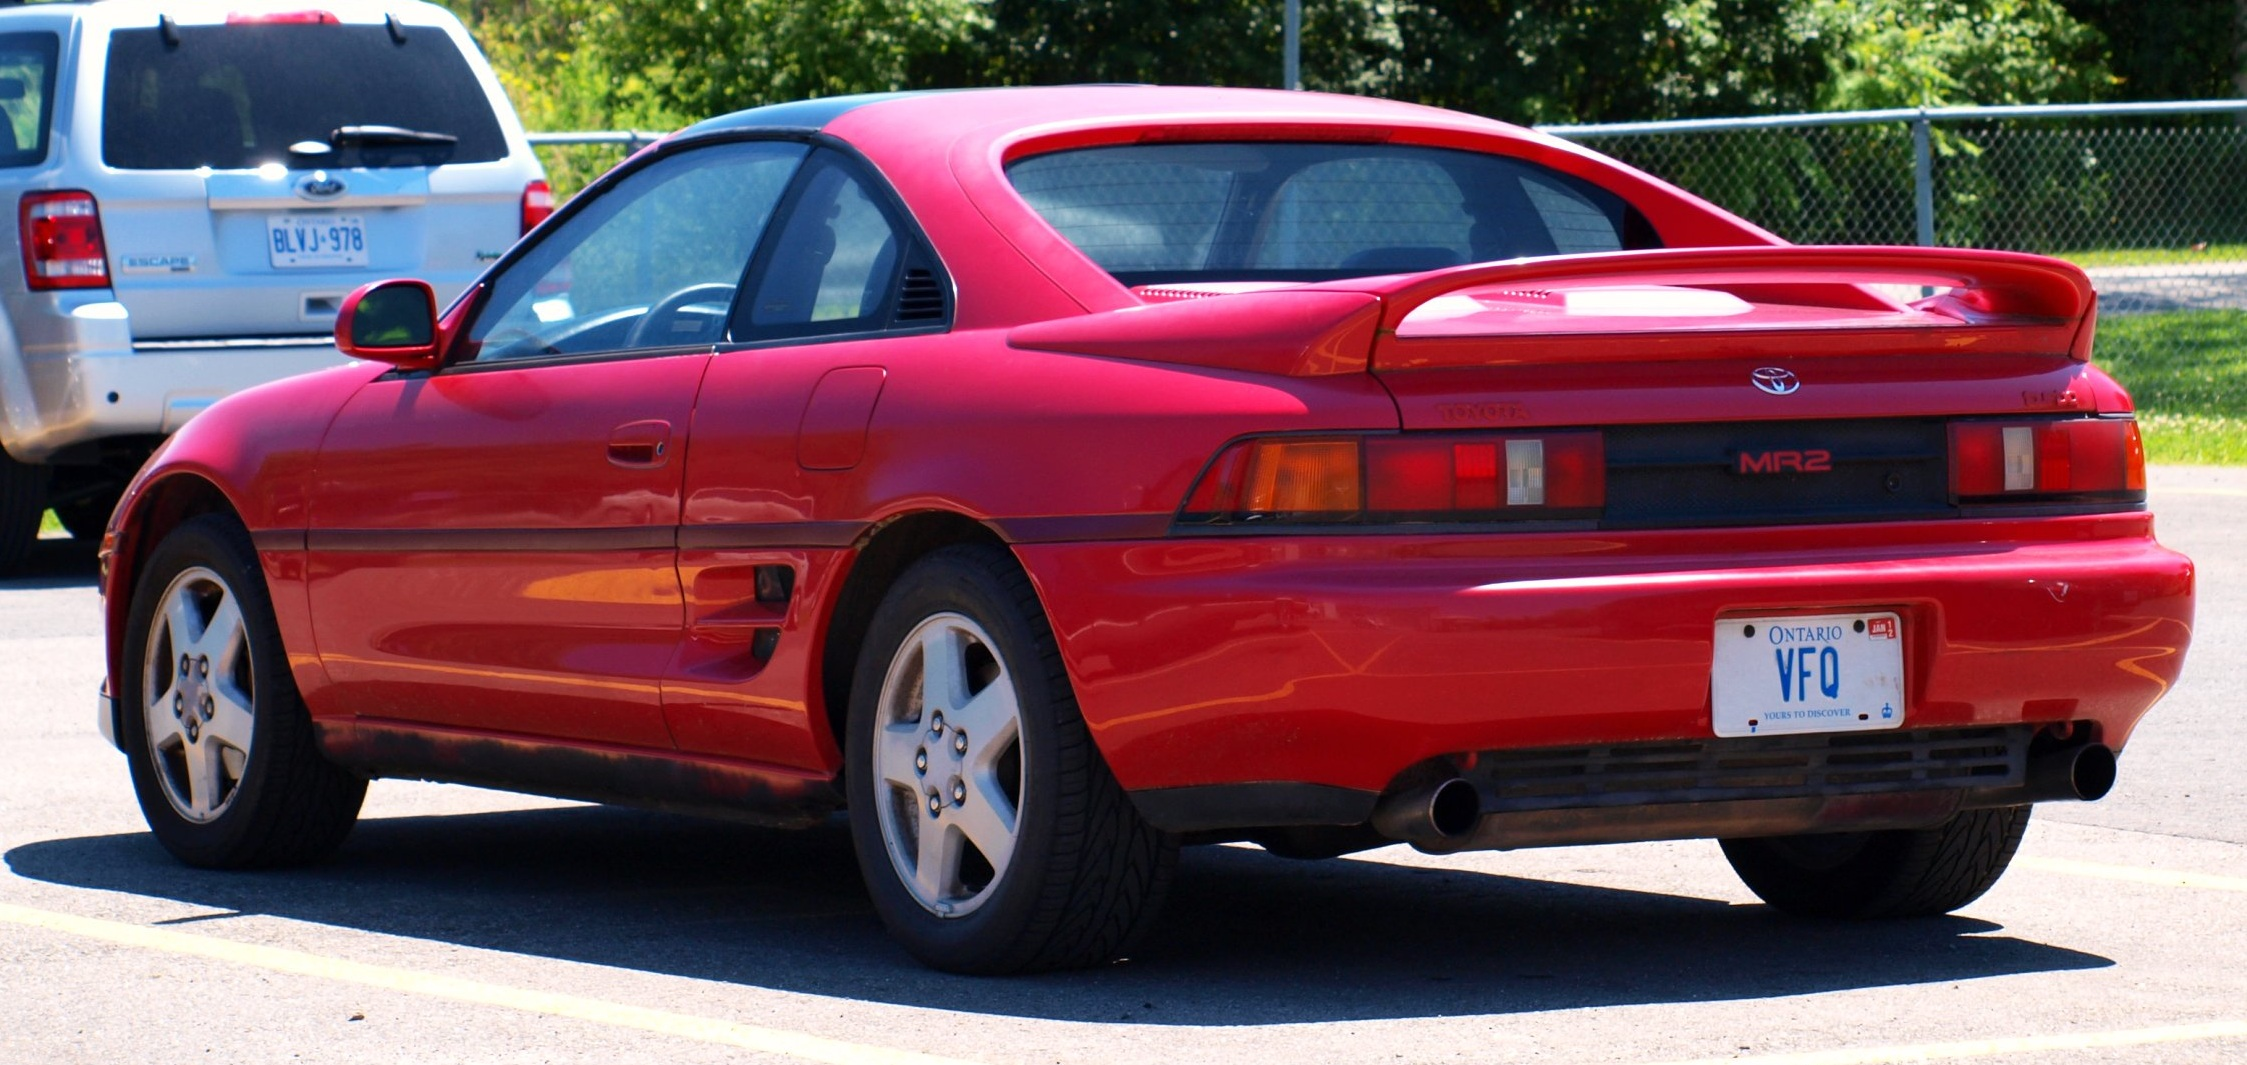 Toyota Mr2 #18